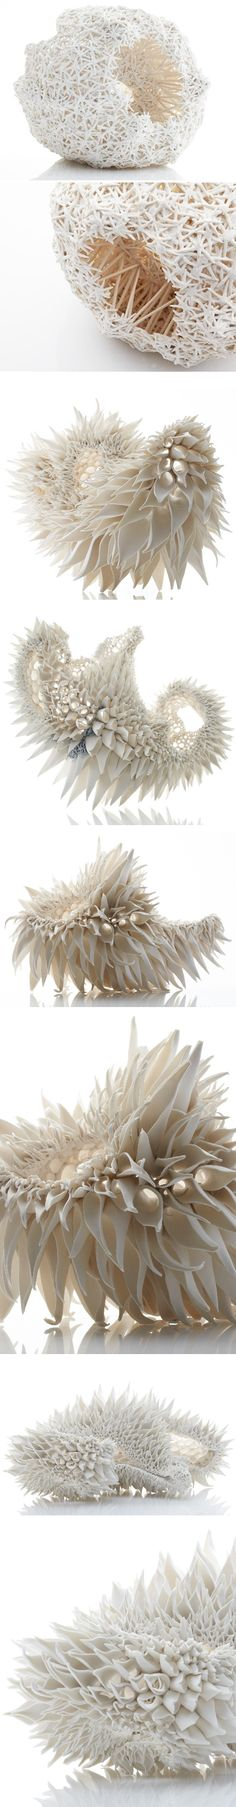 Crazy, beautiful, organic ceramic pieces by Nuala O'Donovan, an artist based in Cork, Ireland. I am imagining that these photos do not do her work justice. Sculptures Céramiques, Art Sculpture, Organic Sculpture, Ceramic Sculptures, Organic Ceramics, Wow Art, 3d Prints, Paperclay, Natural Forms